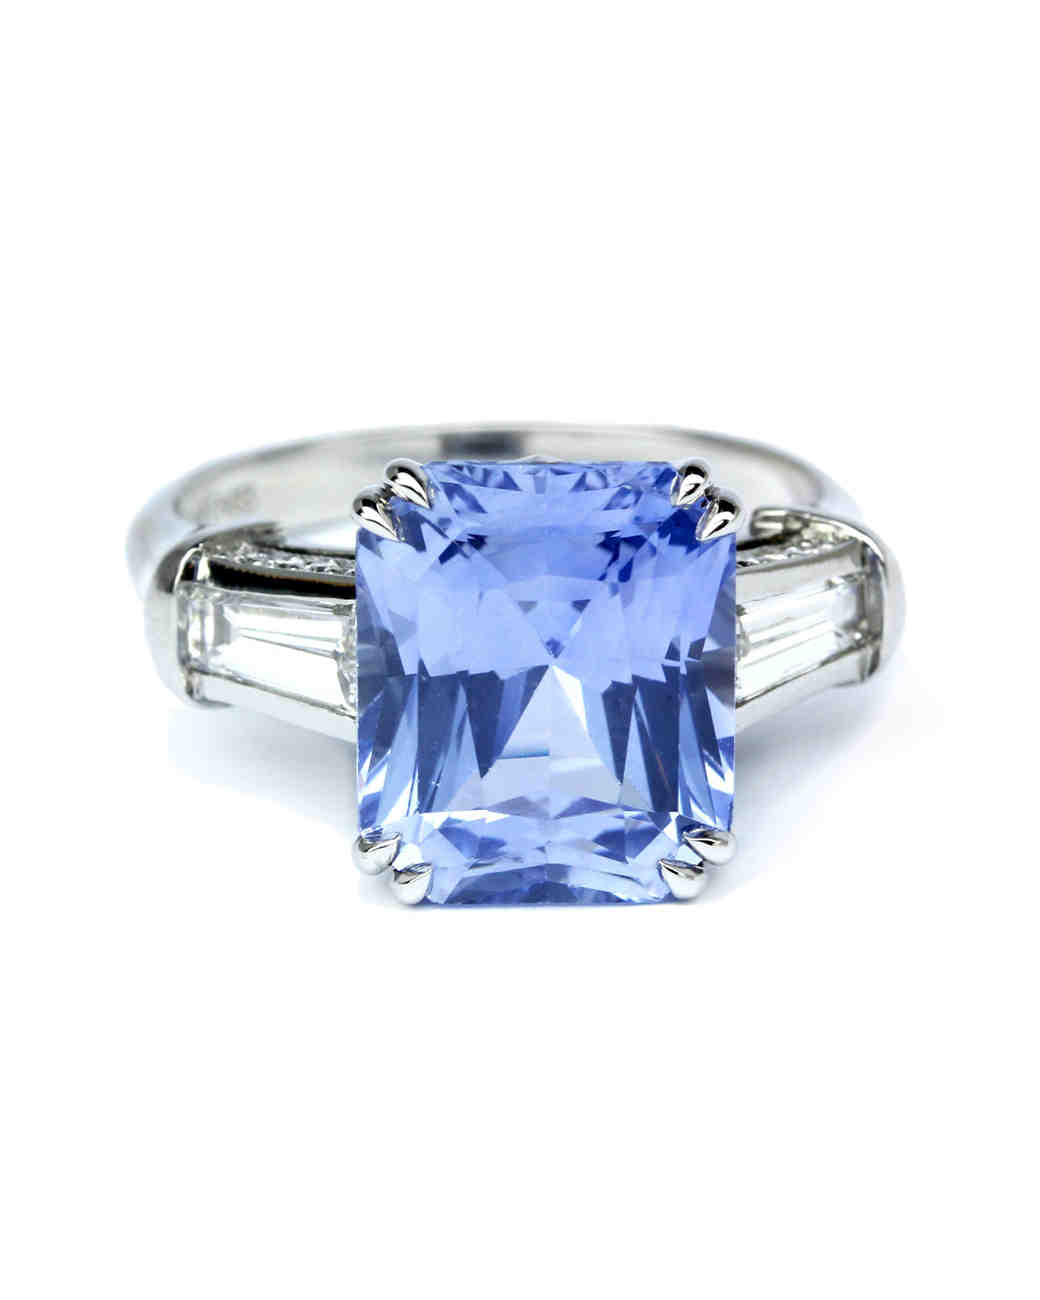 gemstones diamond search diamonds munn product blue ring s coast gallery colored